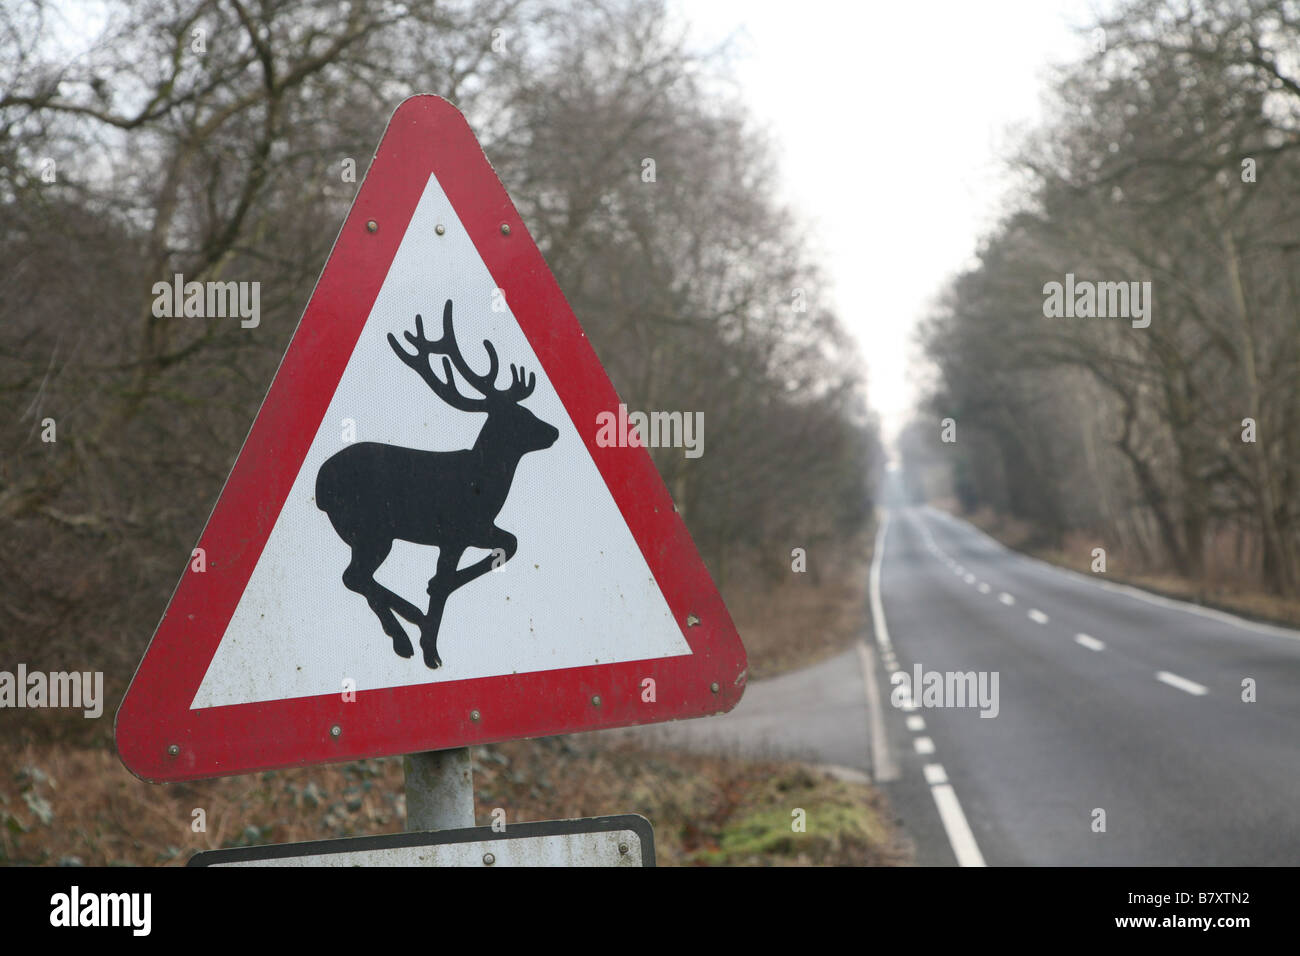 Triangular road sign warning of deer on road Sutton Suffolk England - Stock Image